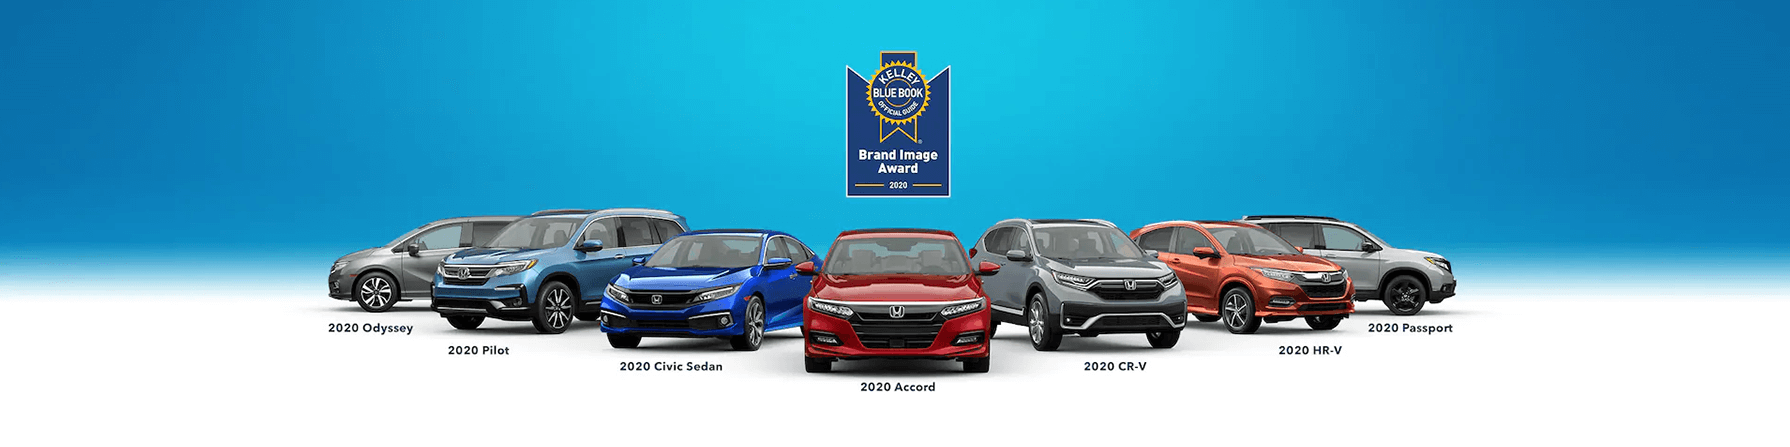 Kelley Blue Book Honda Best Value Brand Award Banner